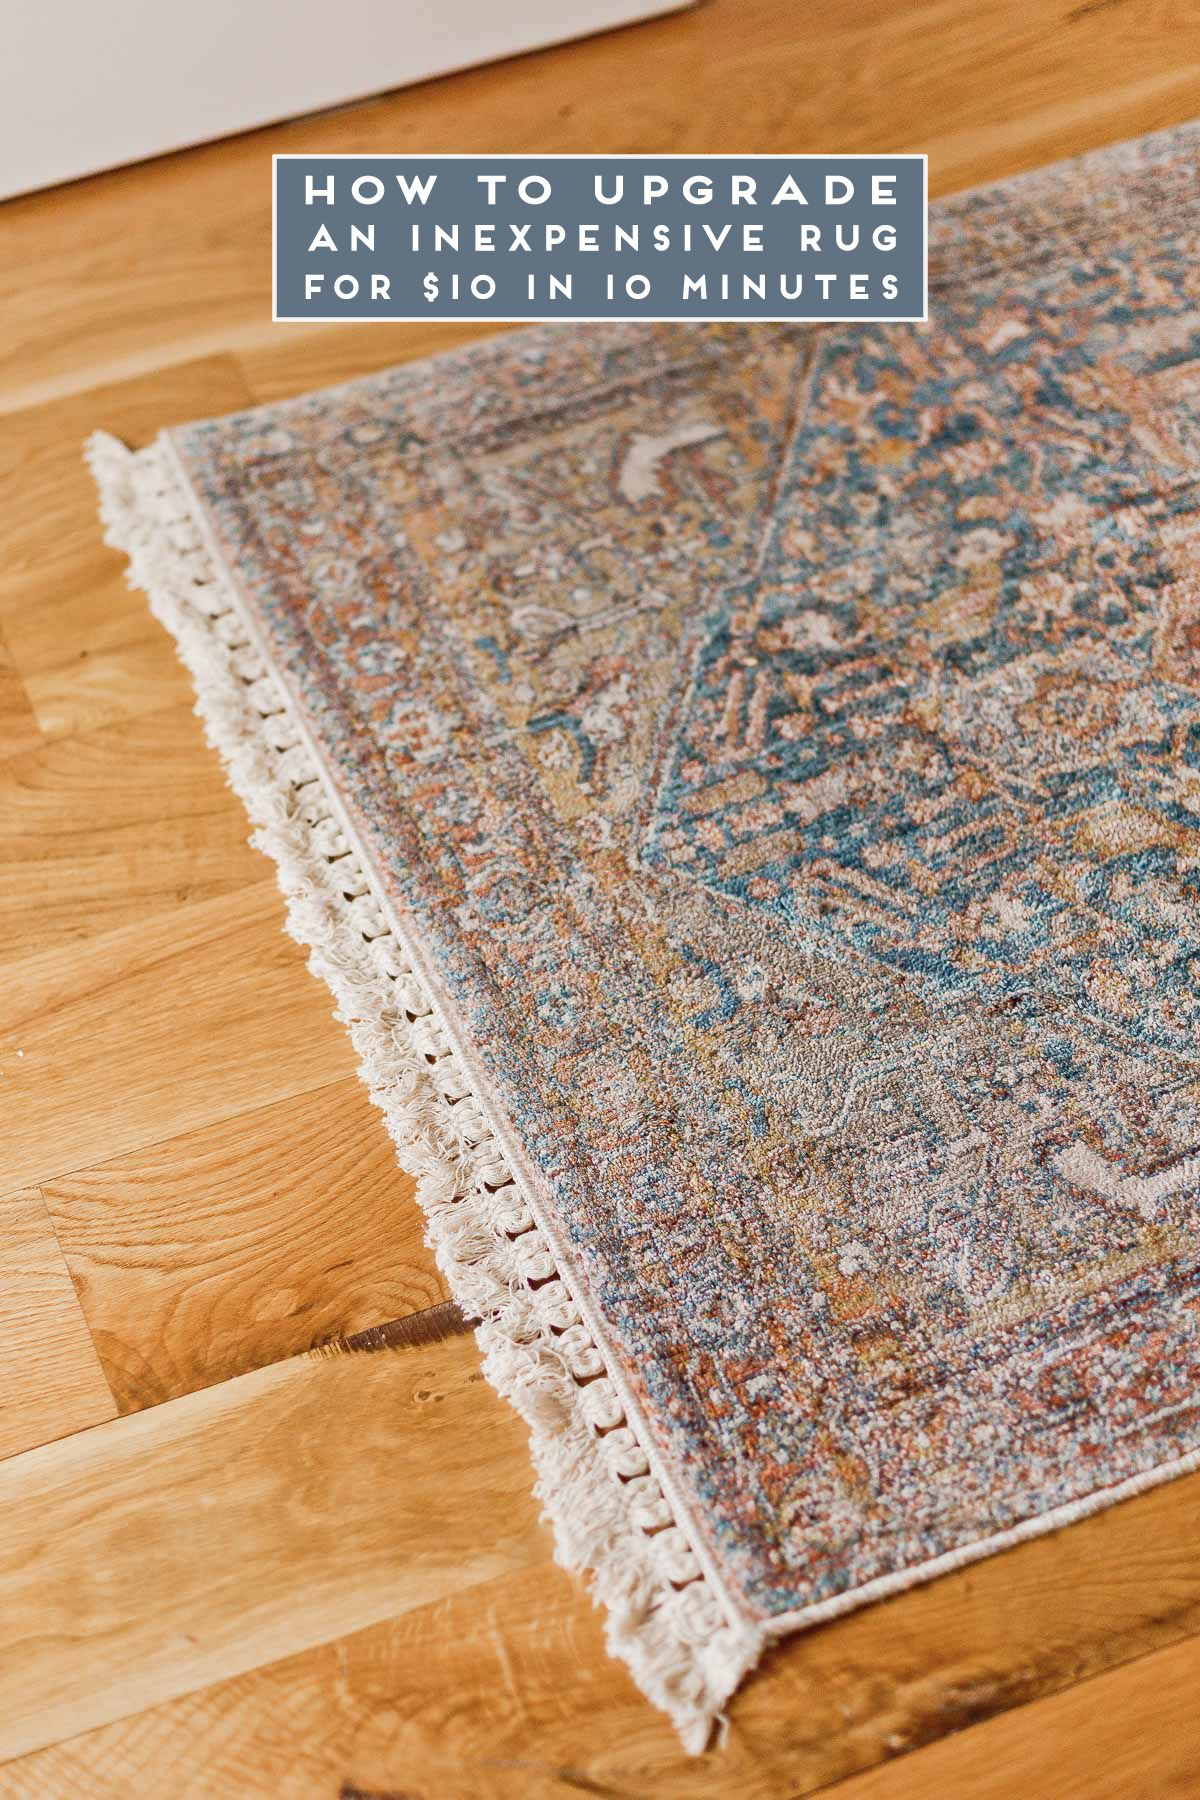 Diy Rug Hack How To Upgrade An Inexpensive Rug For 10 In 10 Minutes Inexpensive Rugs Rug Hacks Diy Rug